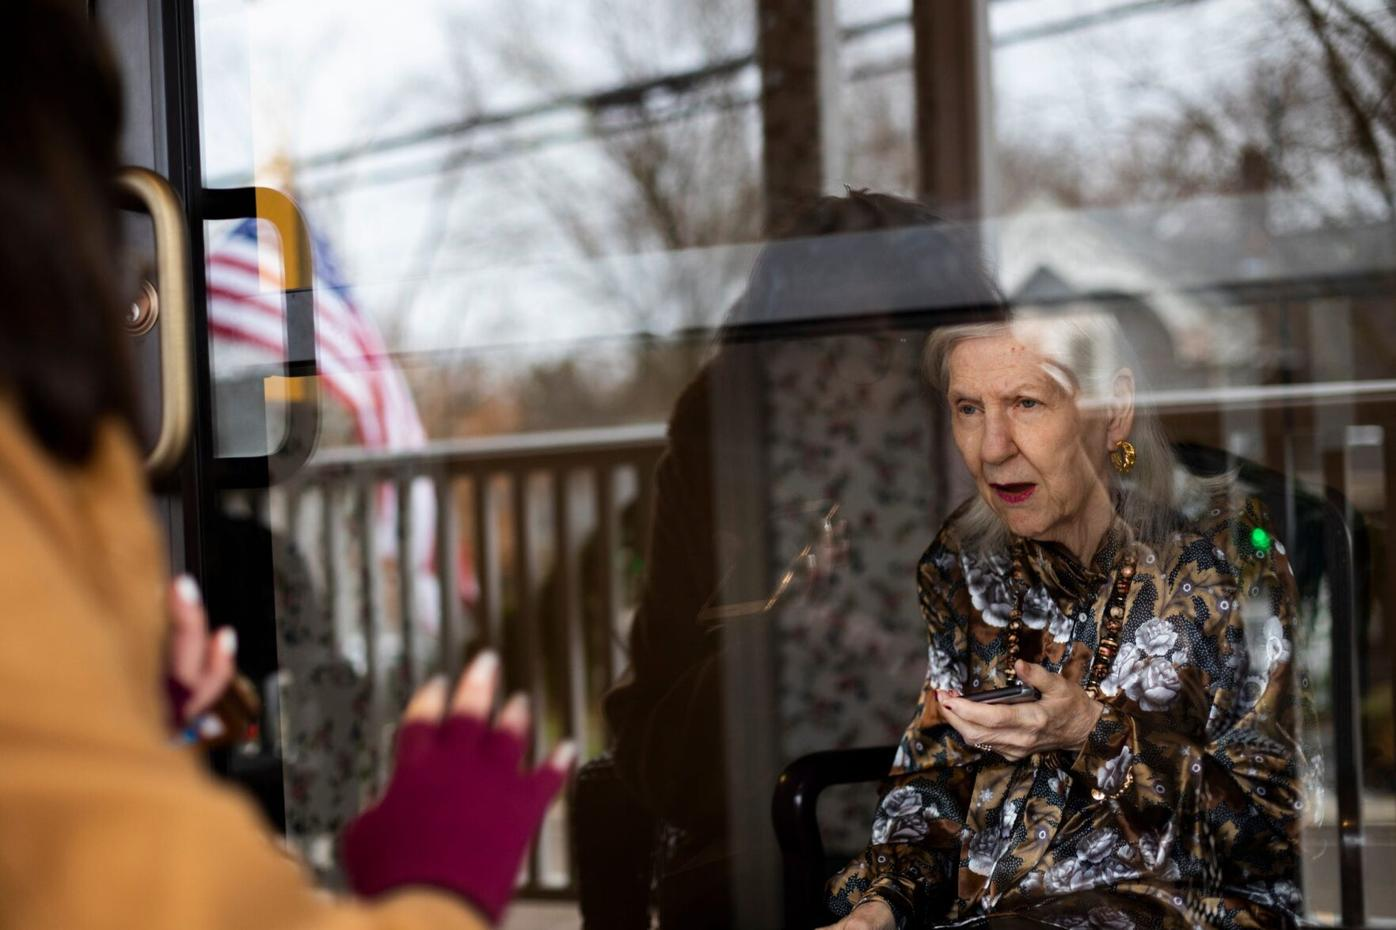 Visiting mom through glass was supposed to be temporary. Now it feels endless